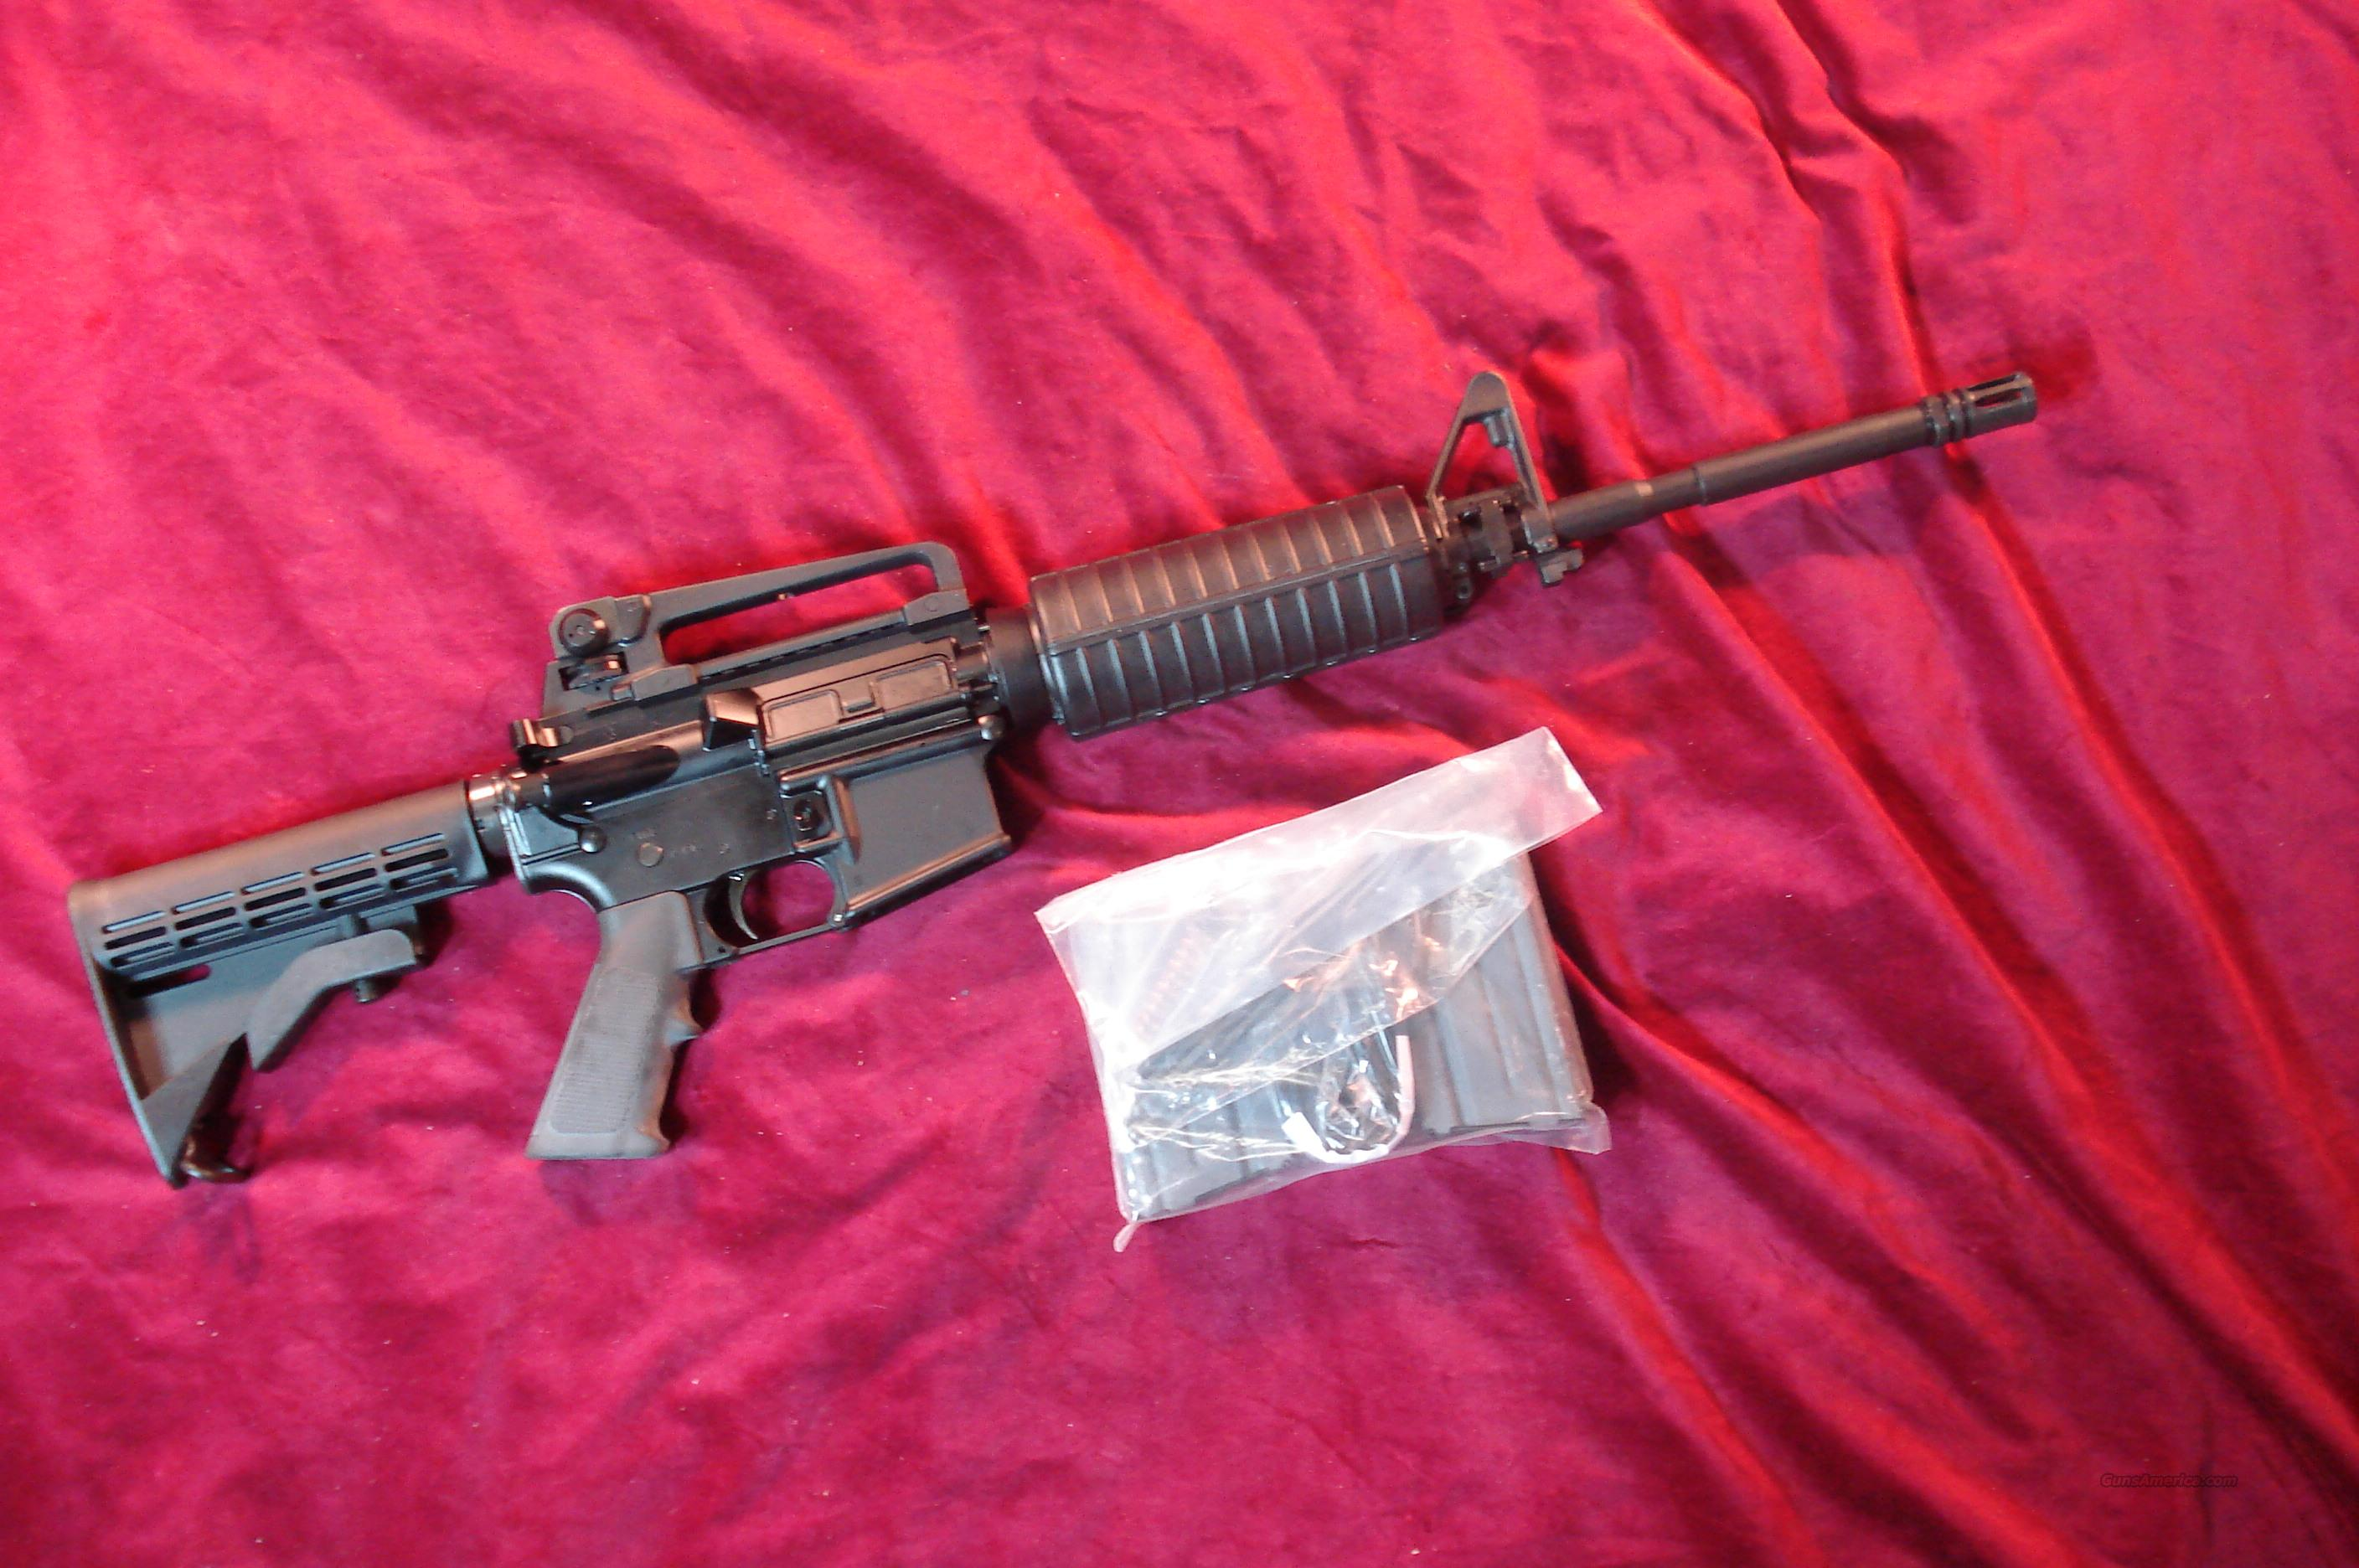 COLT M4 FLATTOP (SP6920) AR-15 5.56/223 CAL. NEW   Guns > Rifles > Colt Military/Tactical Rifles